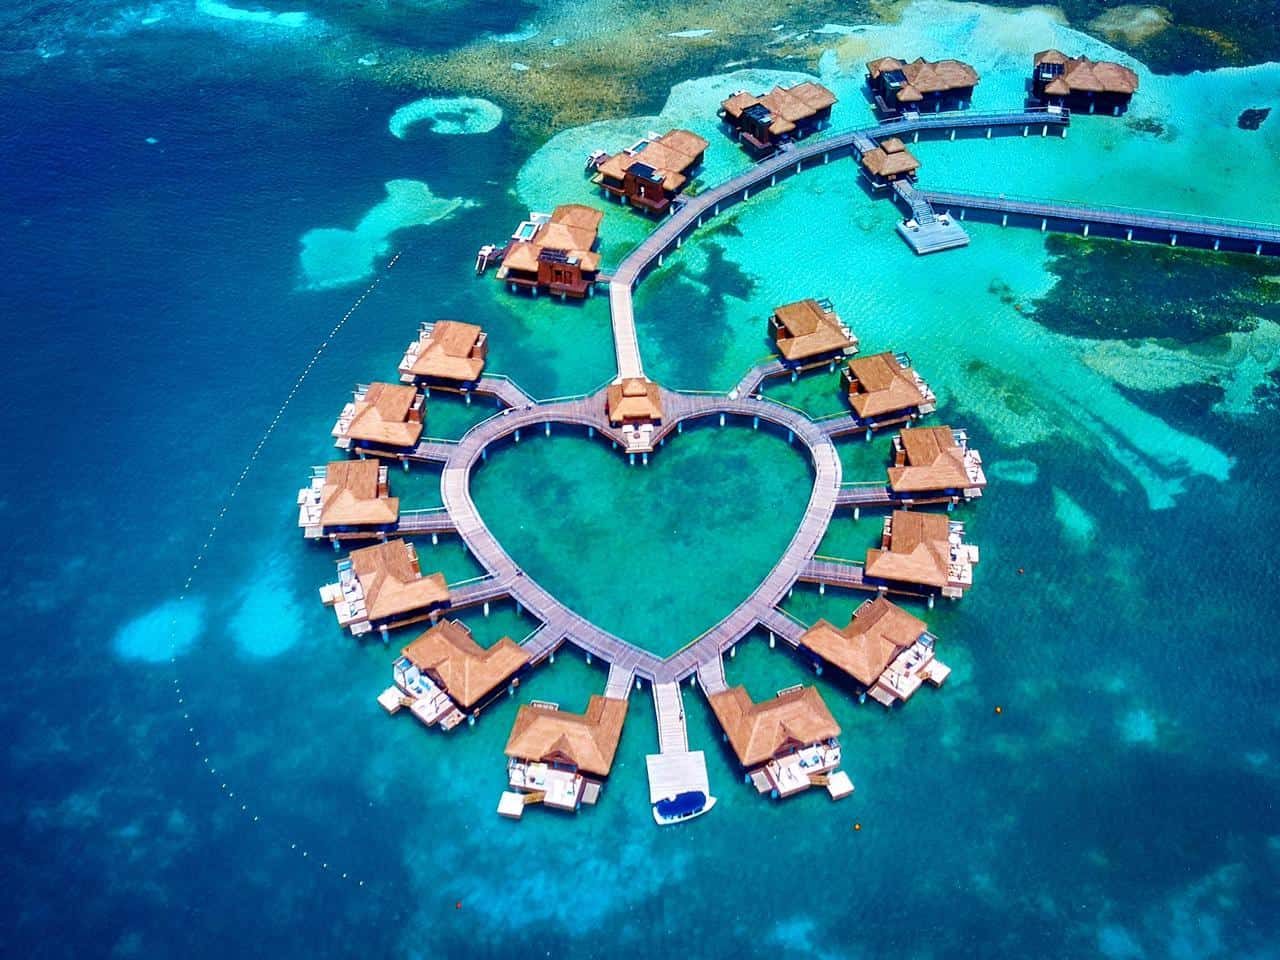 A group of overwater bungalows in the shape of a heart